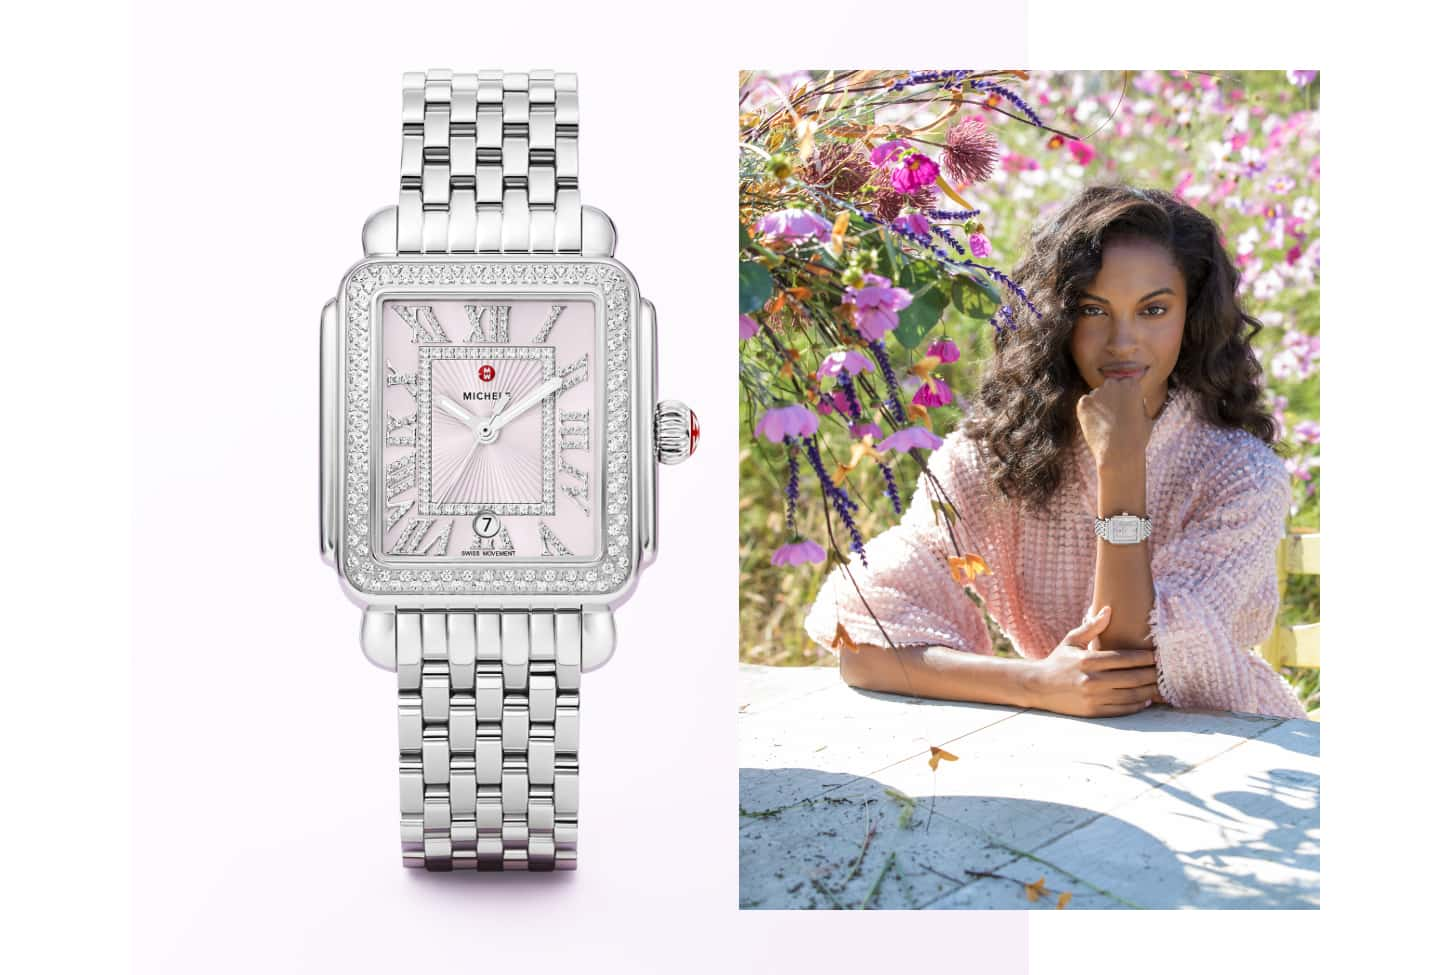 Fashionable woman wearing Deco Madison watch in stainless featuring a lilac dial and diamond-covered Roman numeral indexes.